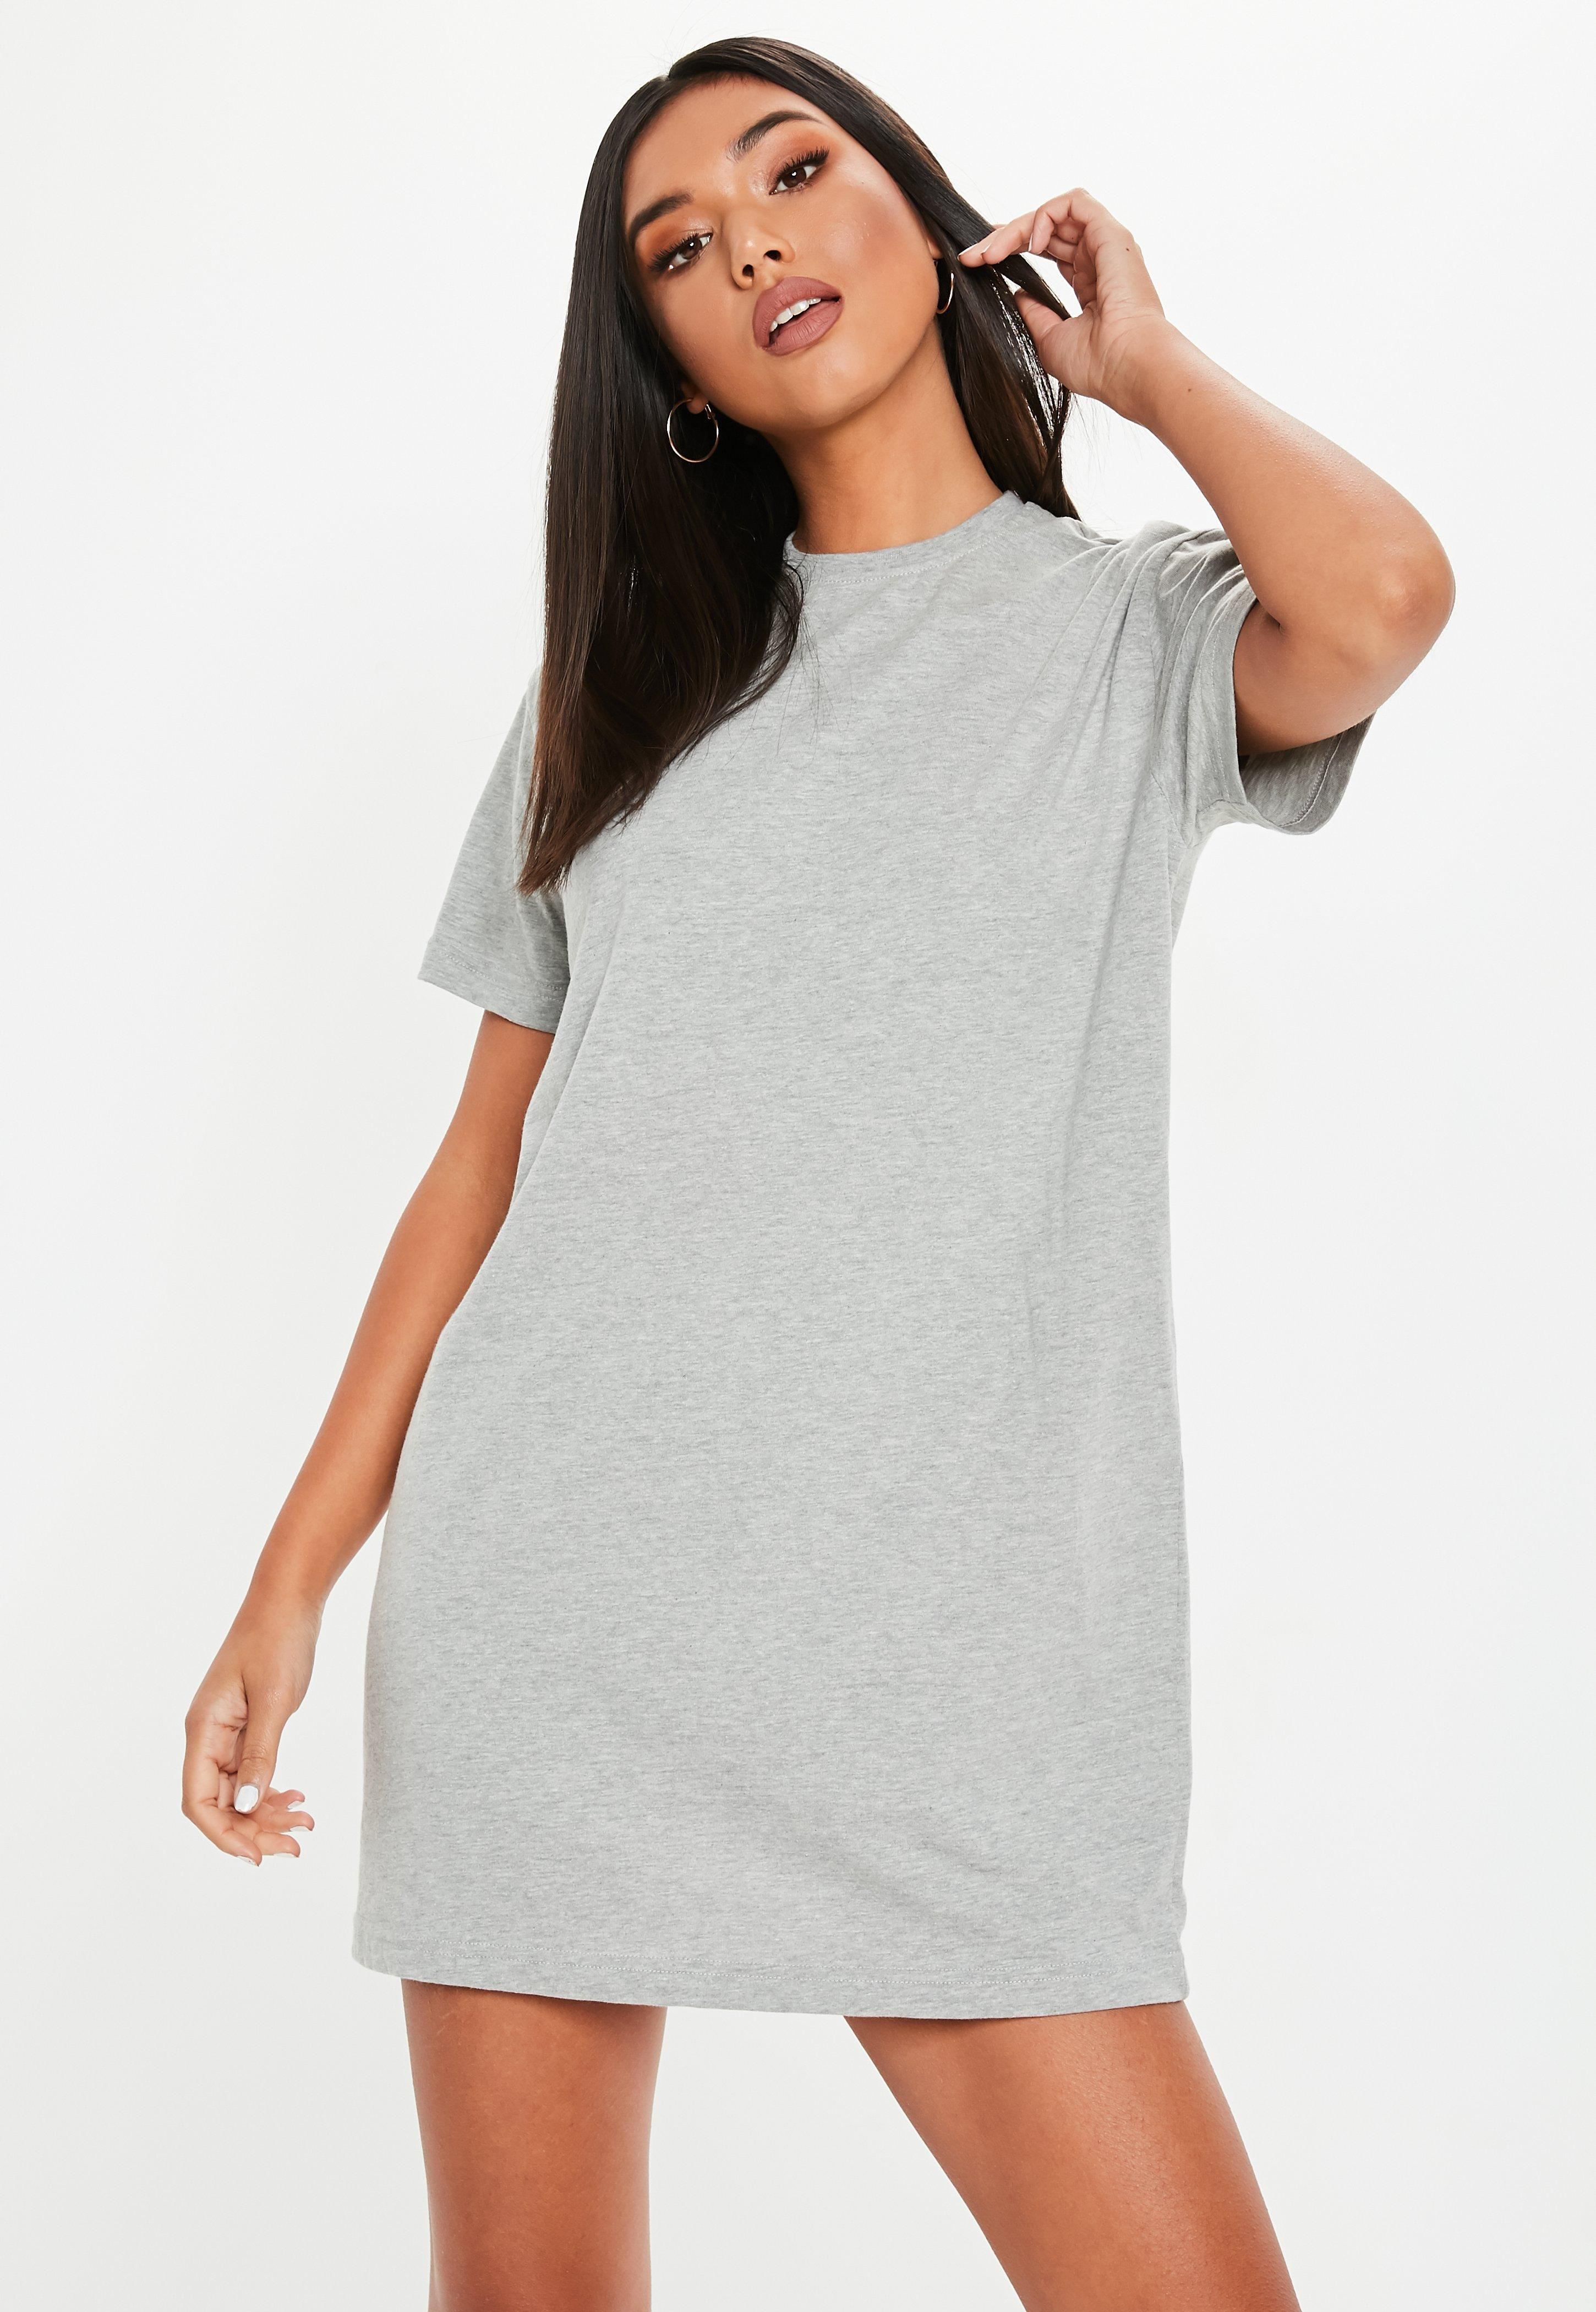 bf66ffe41749 Lyst - Missguided Gray Basic T Shirt Dress in Gray